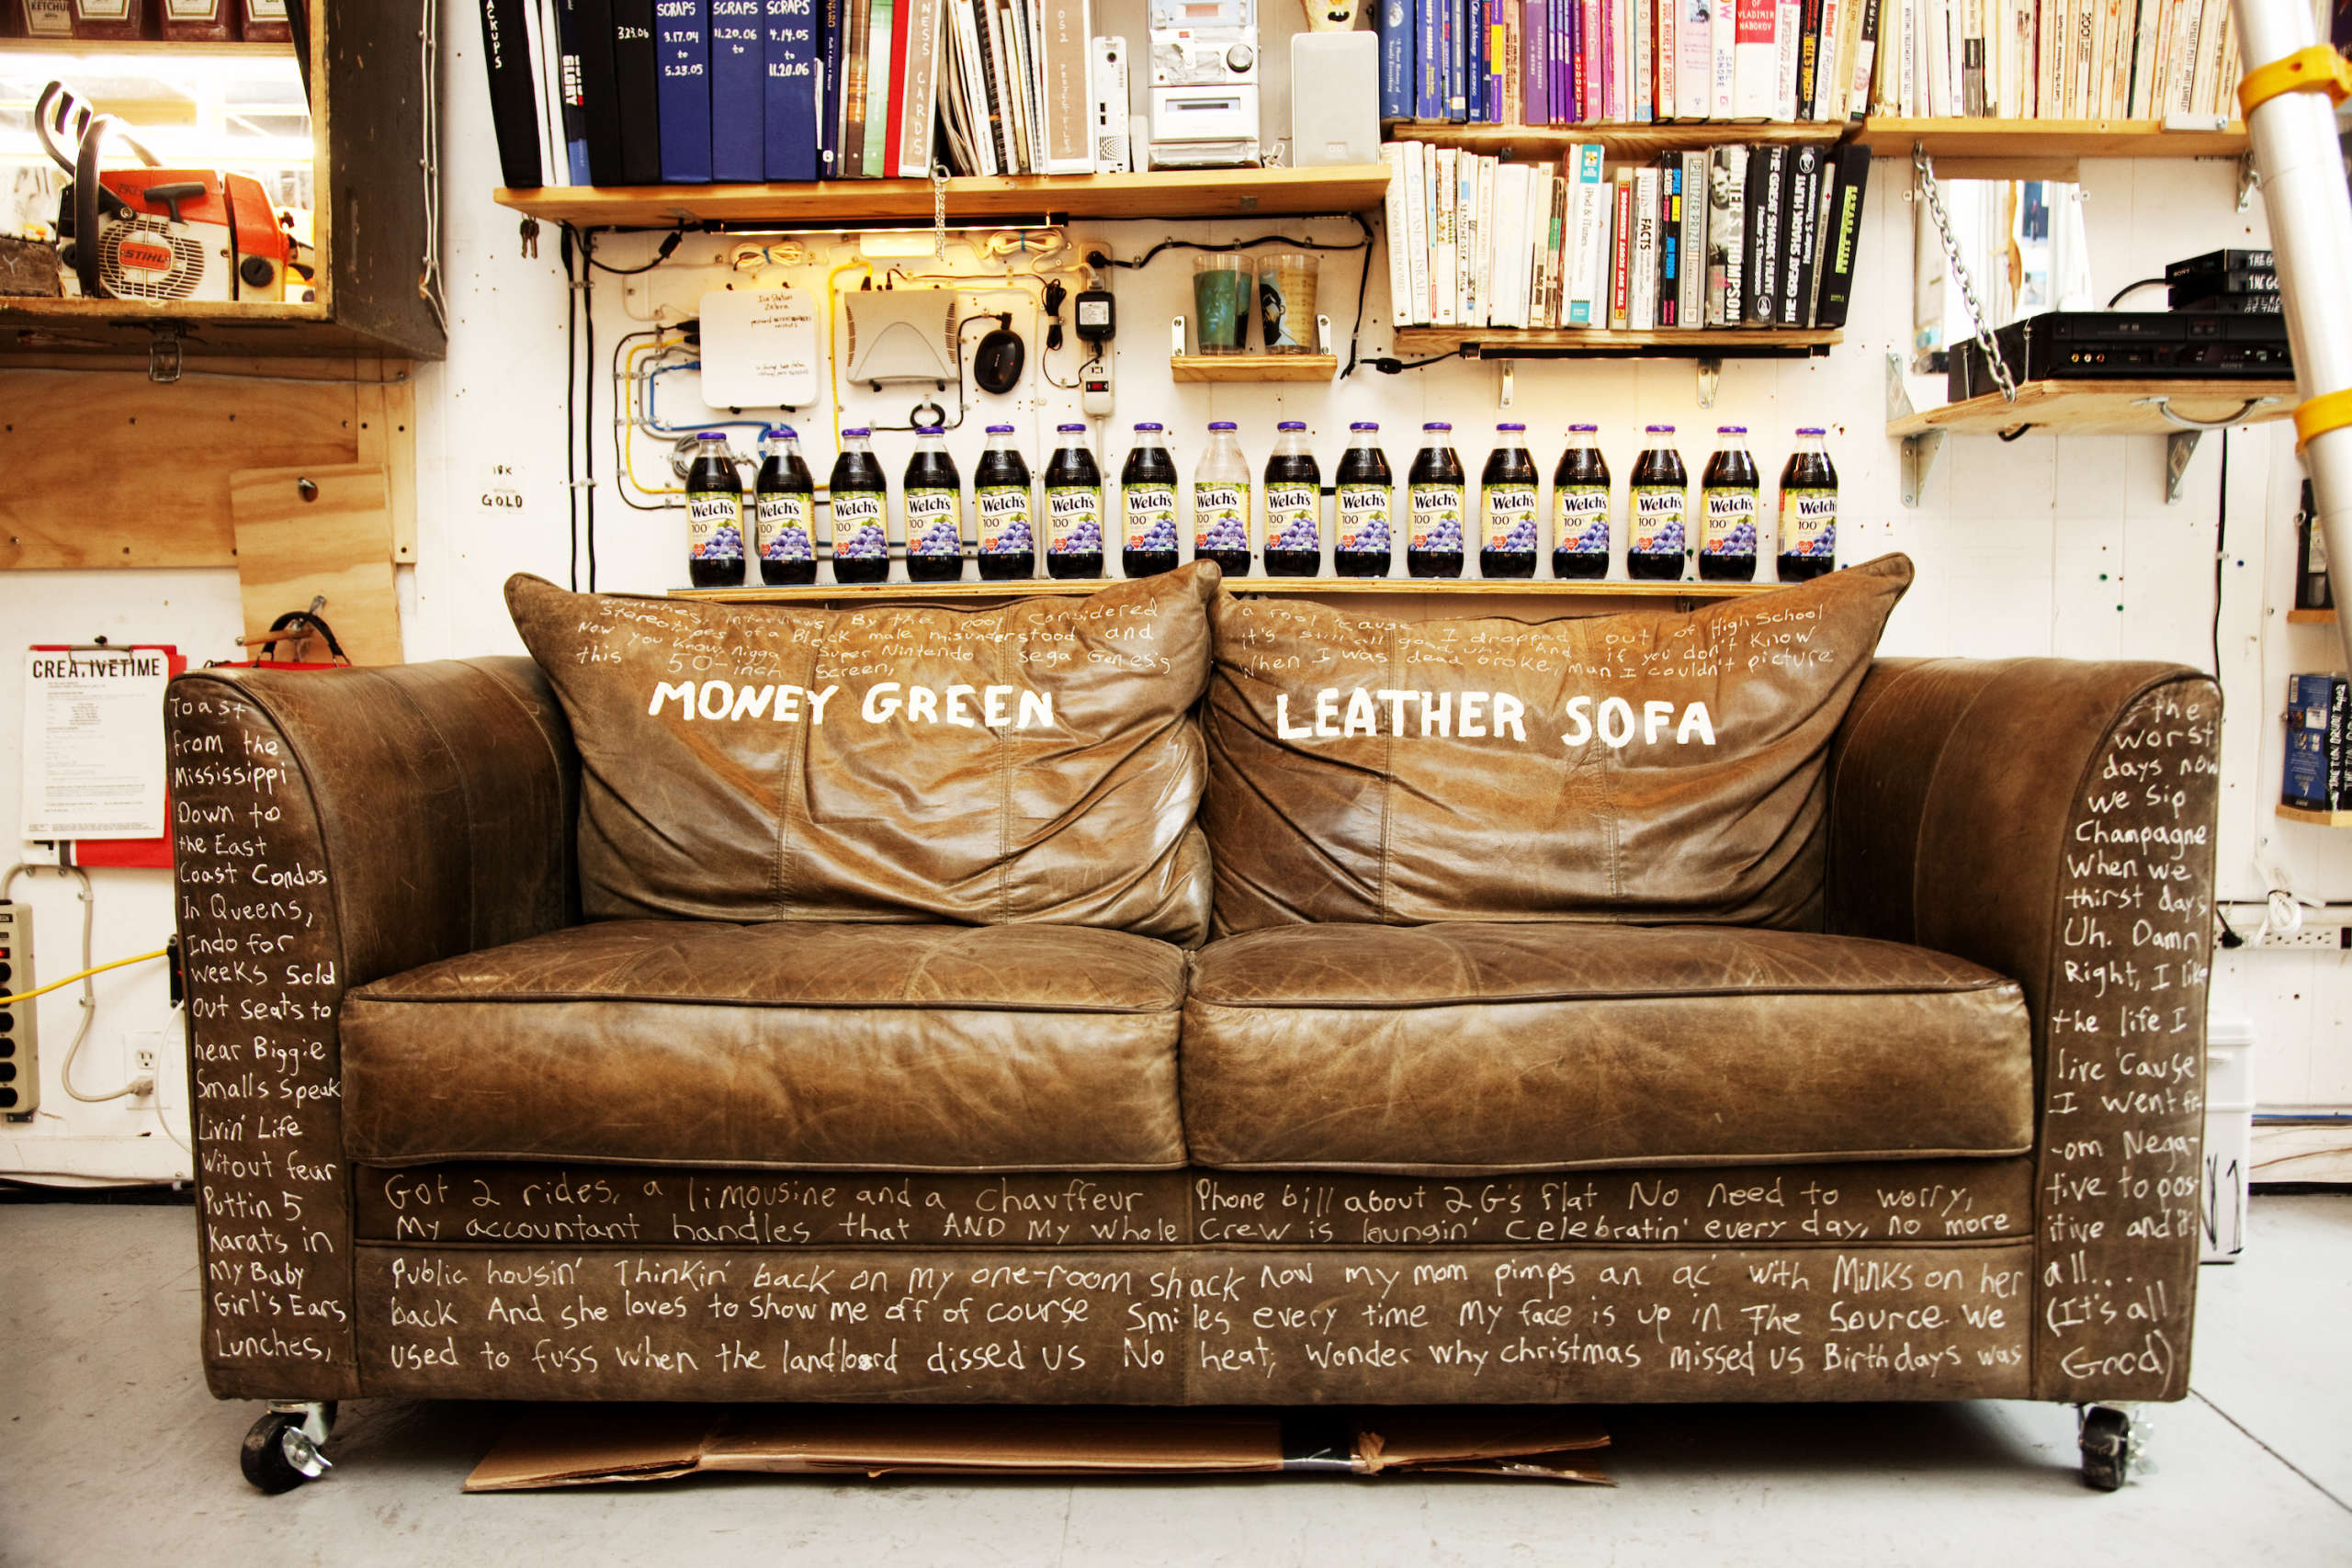 Todd Selby, Van and Caseys Money Green Leather Sofa, 2009 - Artwork ...